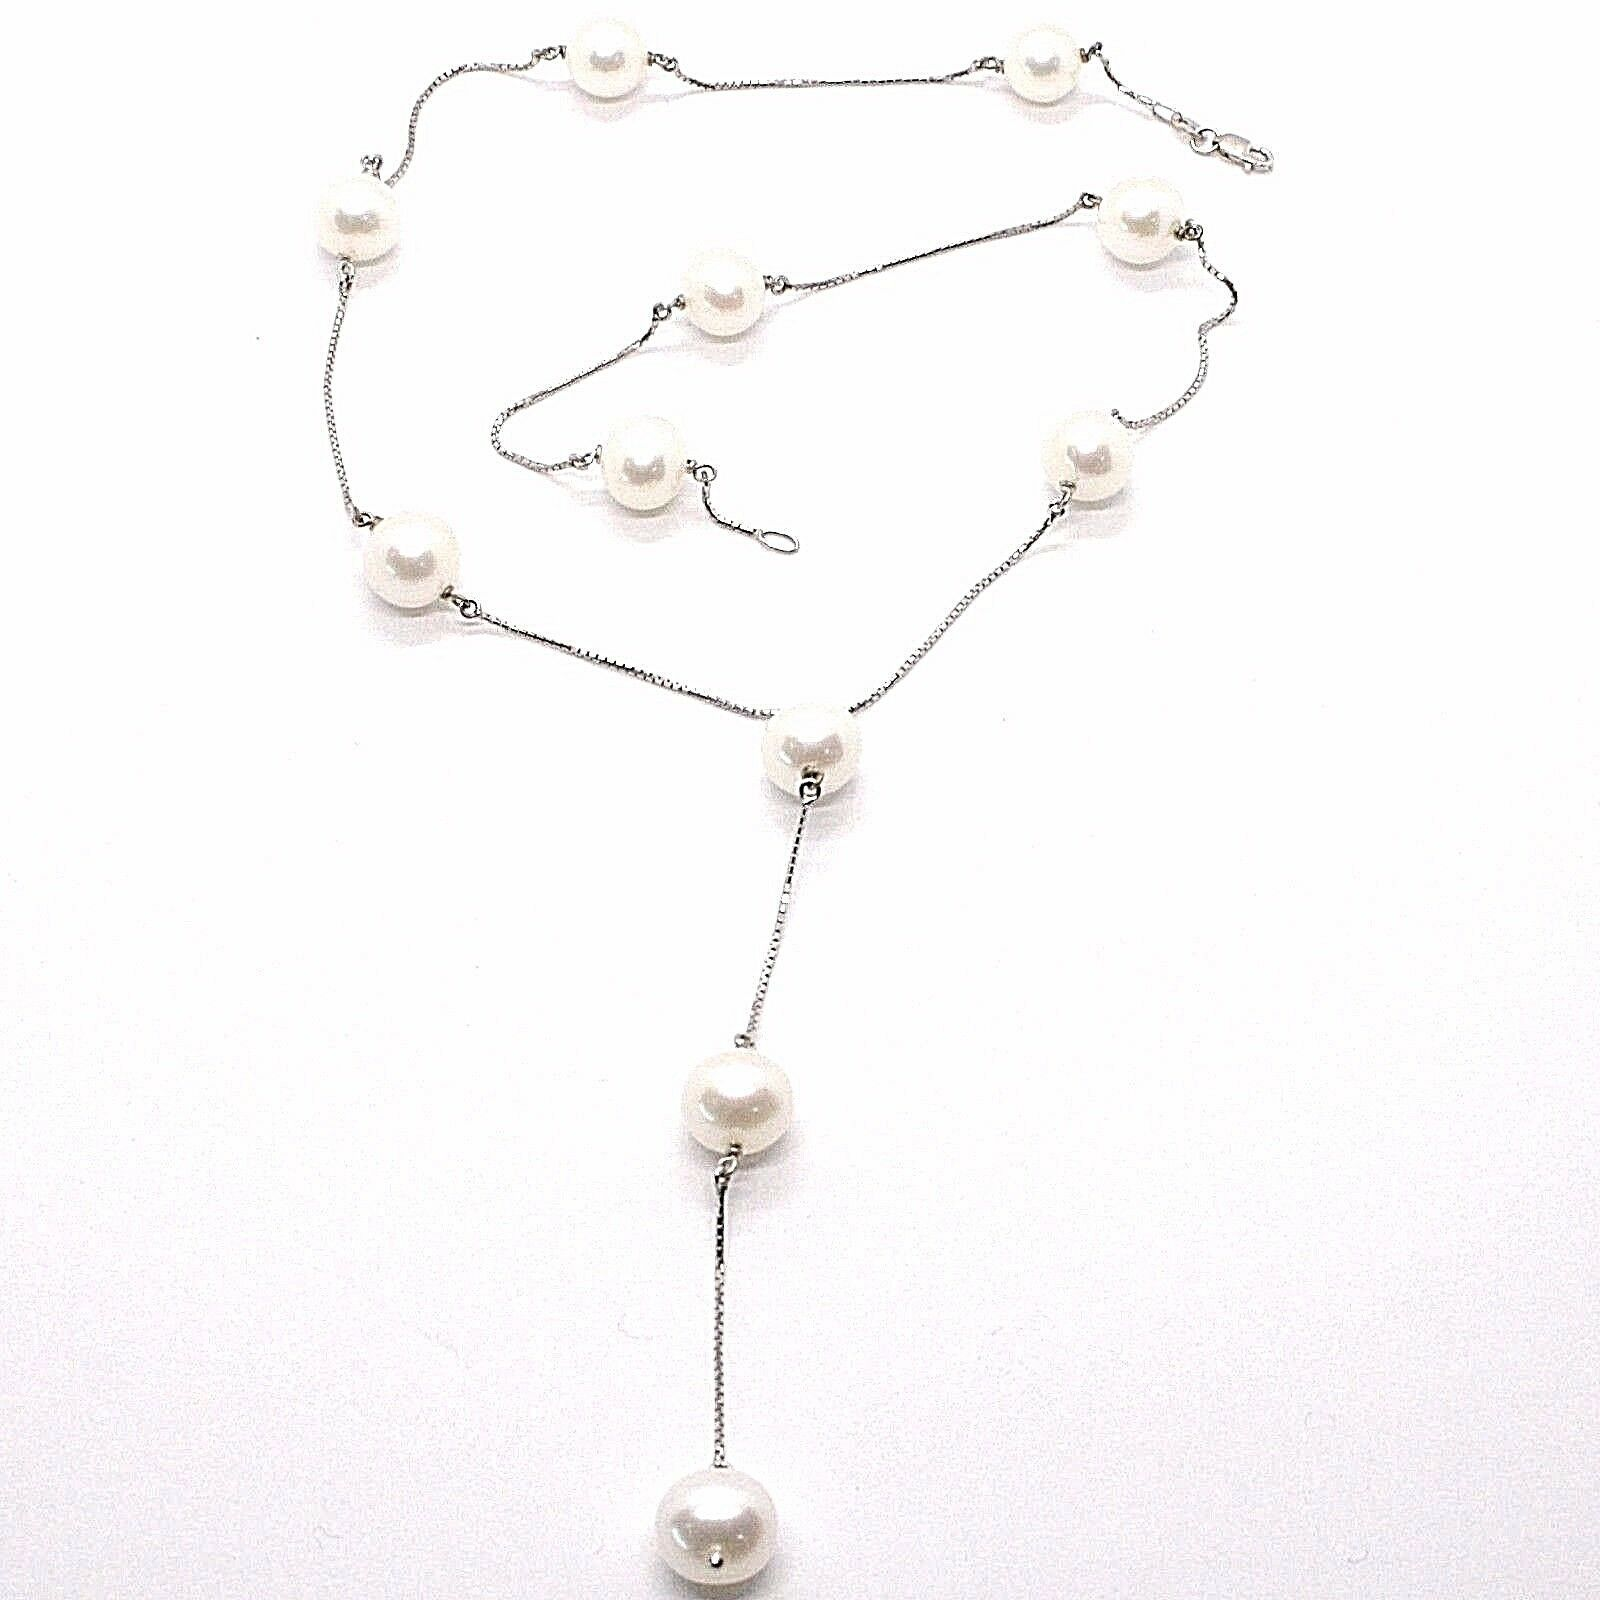 Necklace White Gold 750 18K, White Pearls 10 mm, with Pendant, Chain Venetian